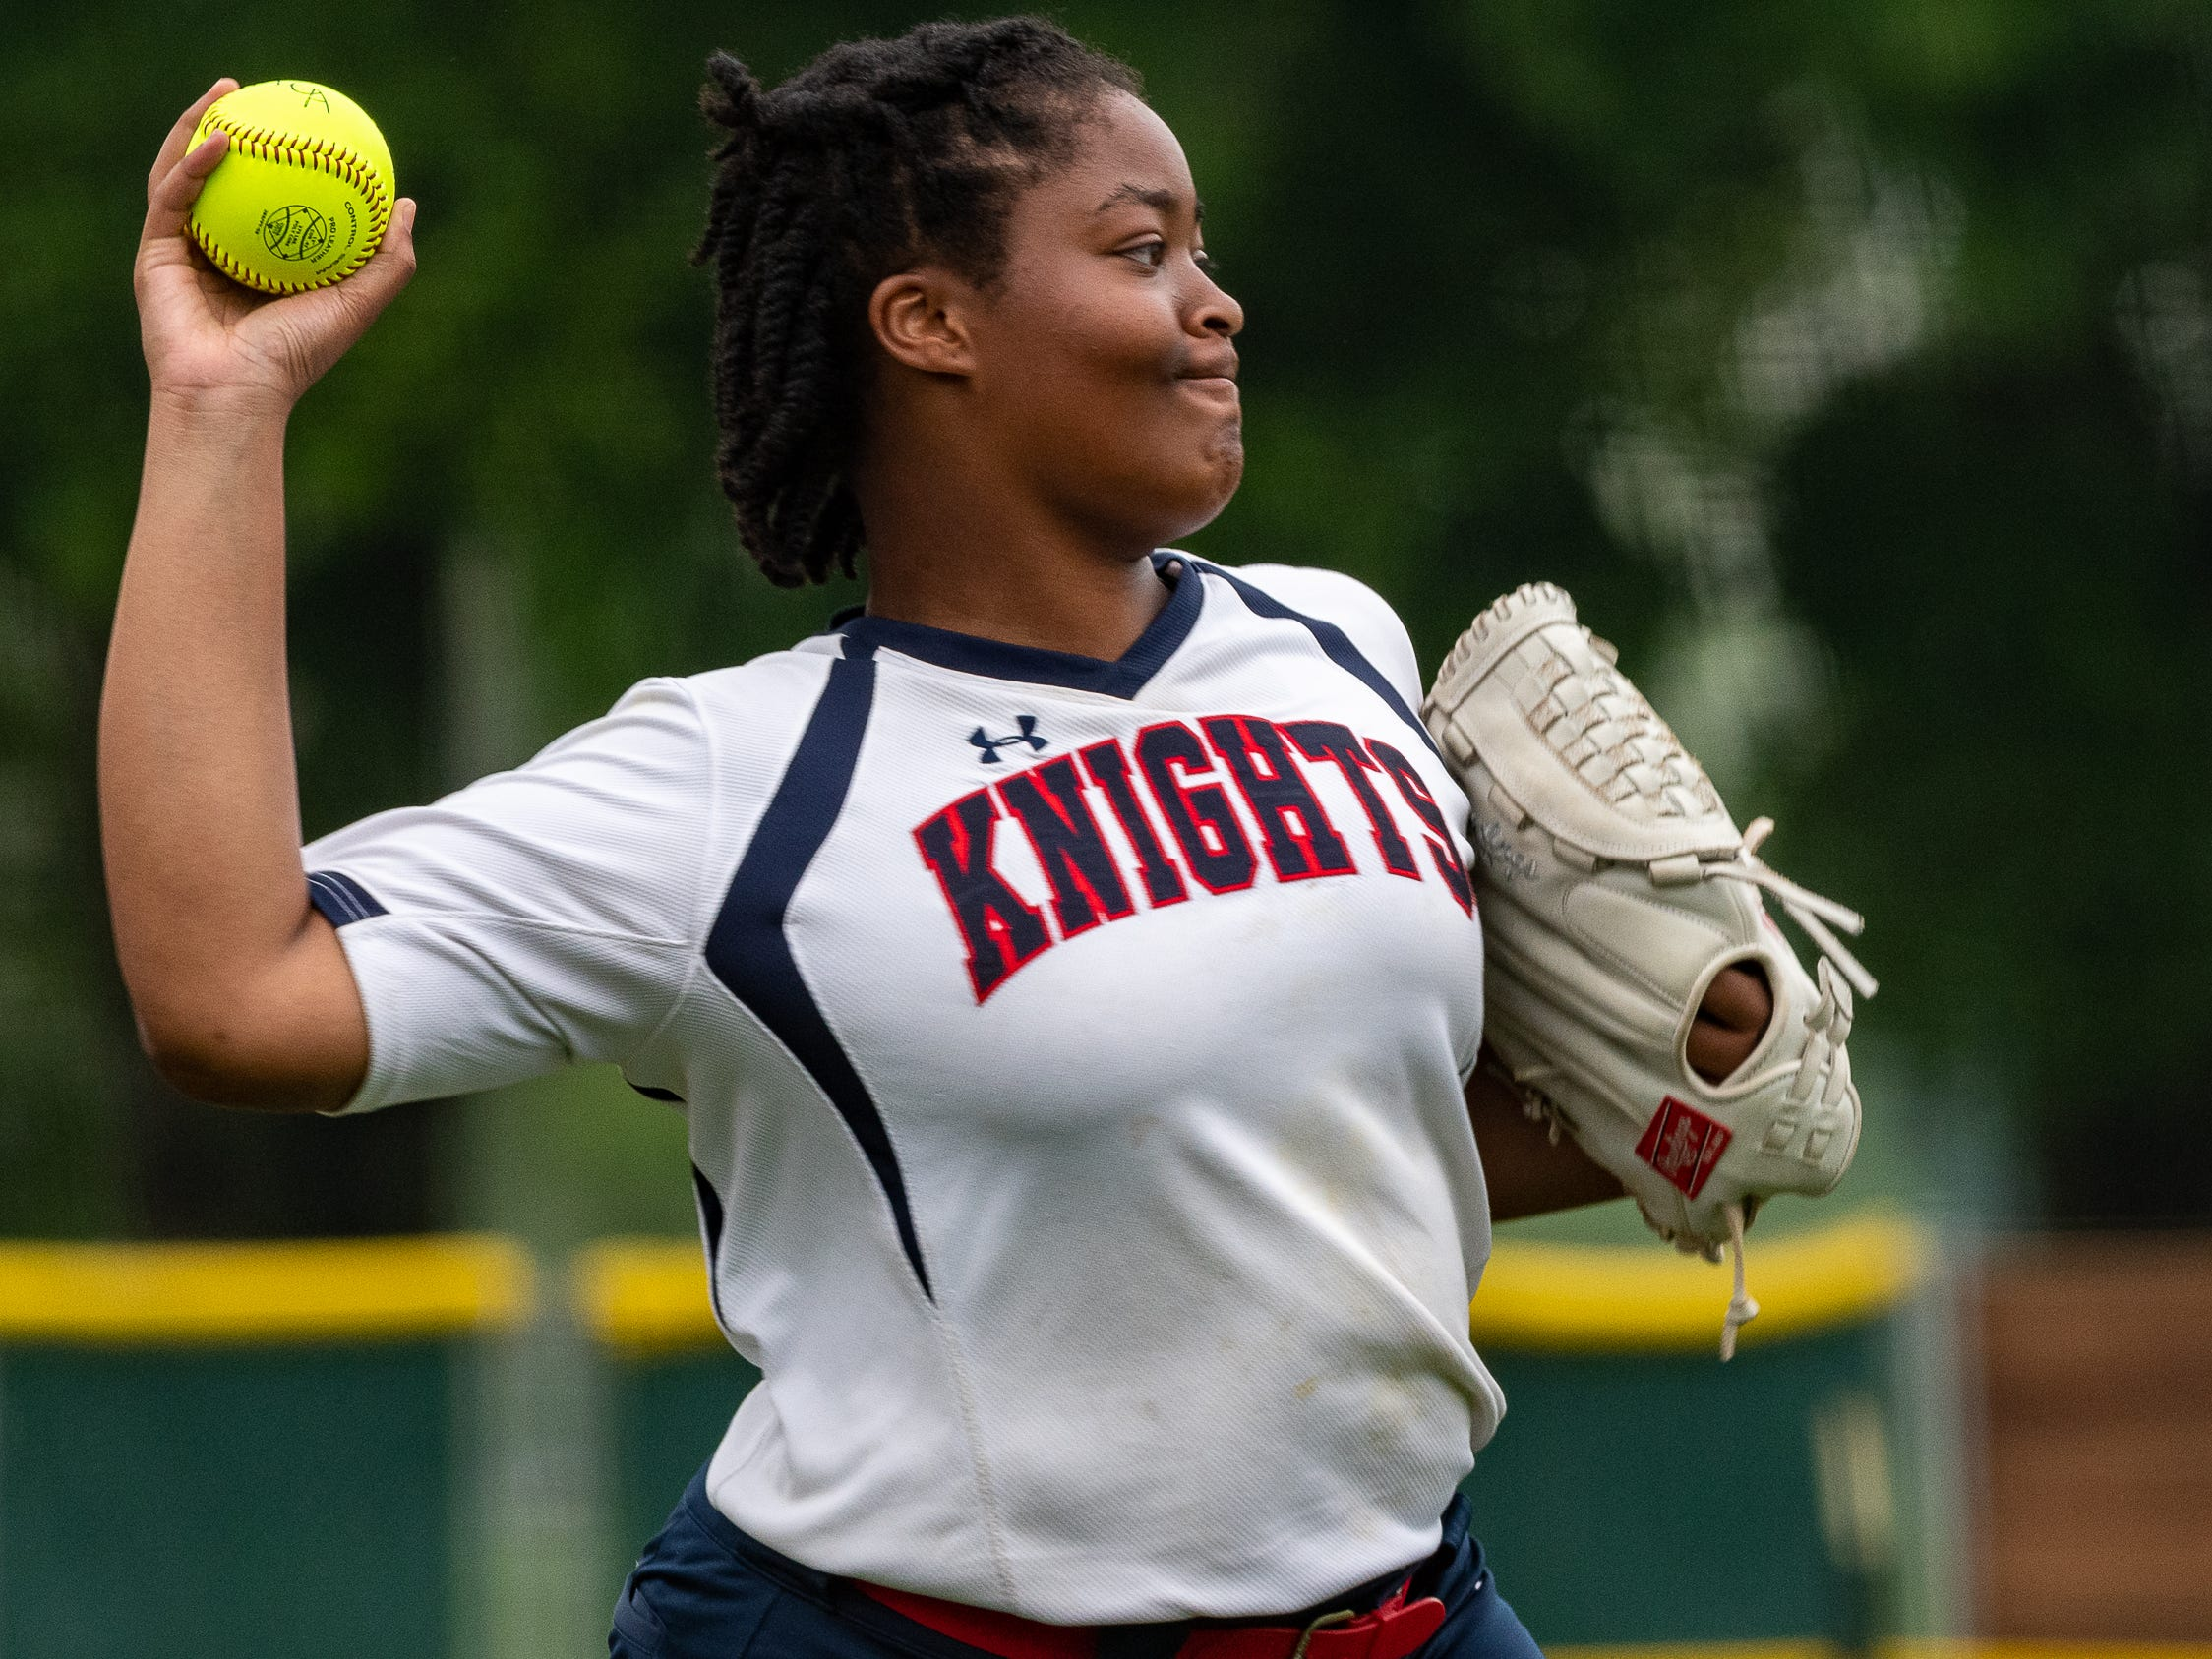 Kam Borel throws out the runner as Lafayette Christian Academy softball takes on University Academy in the forst round of the LHSAA playoffs. Friday, April 12, 2019.